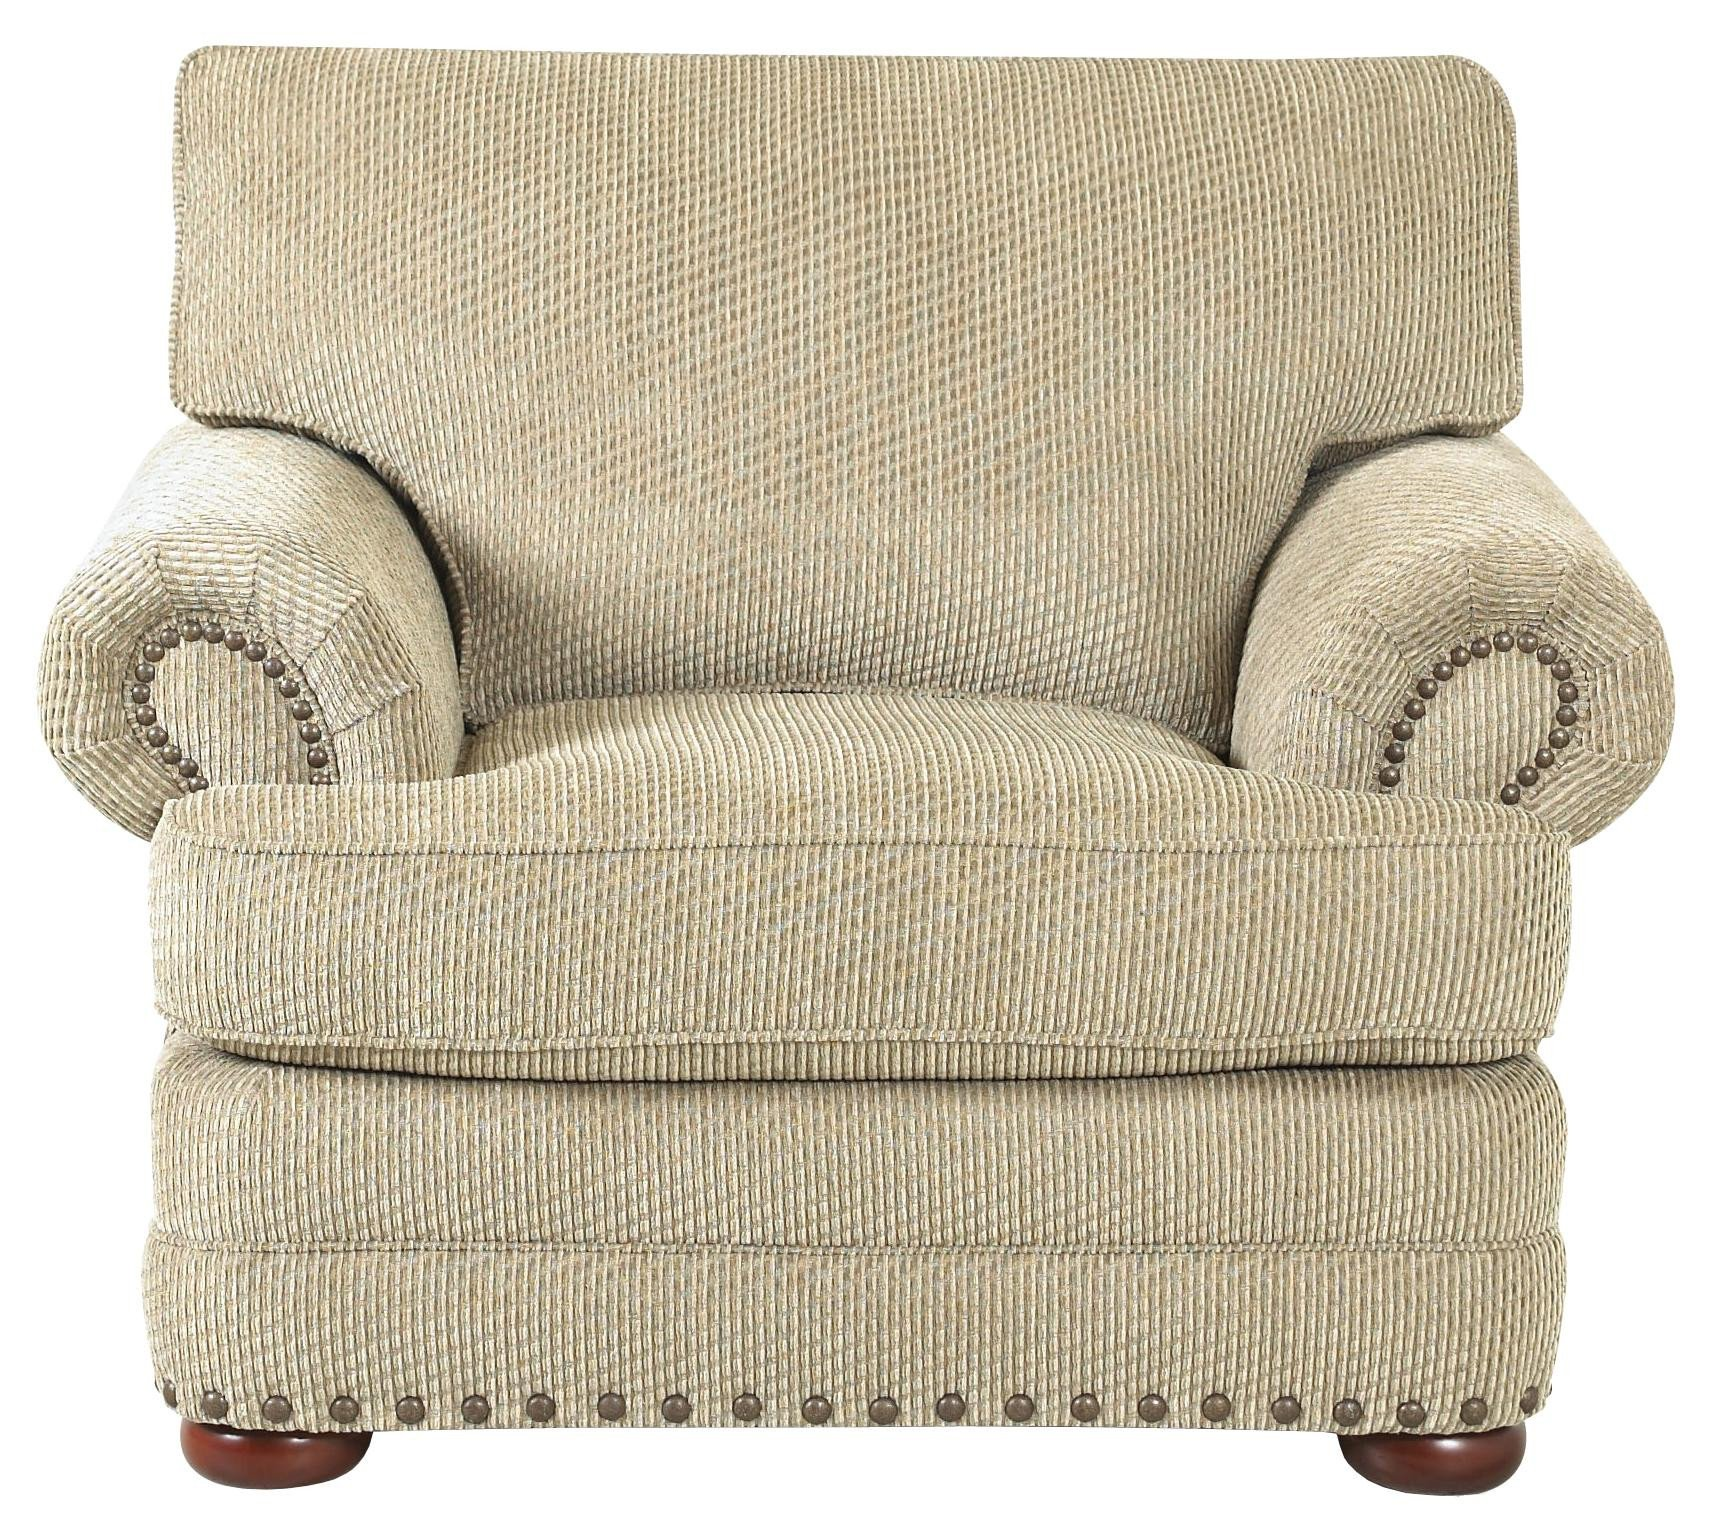 Traditional Living Room Upholstered Chairs Luxury Traditional Styled Living Room Chair by Klaussner